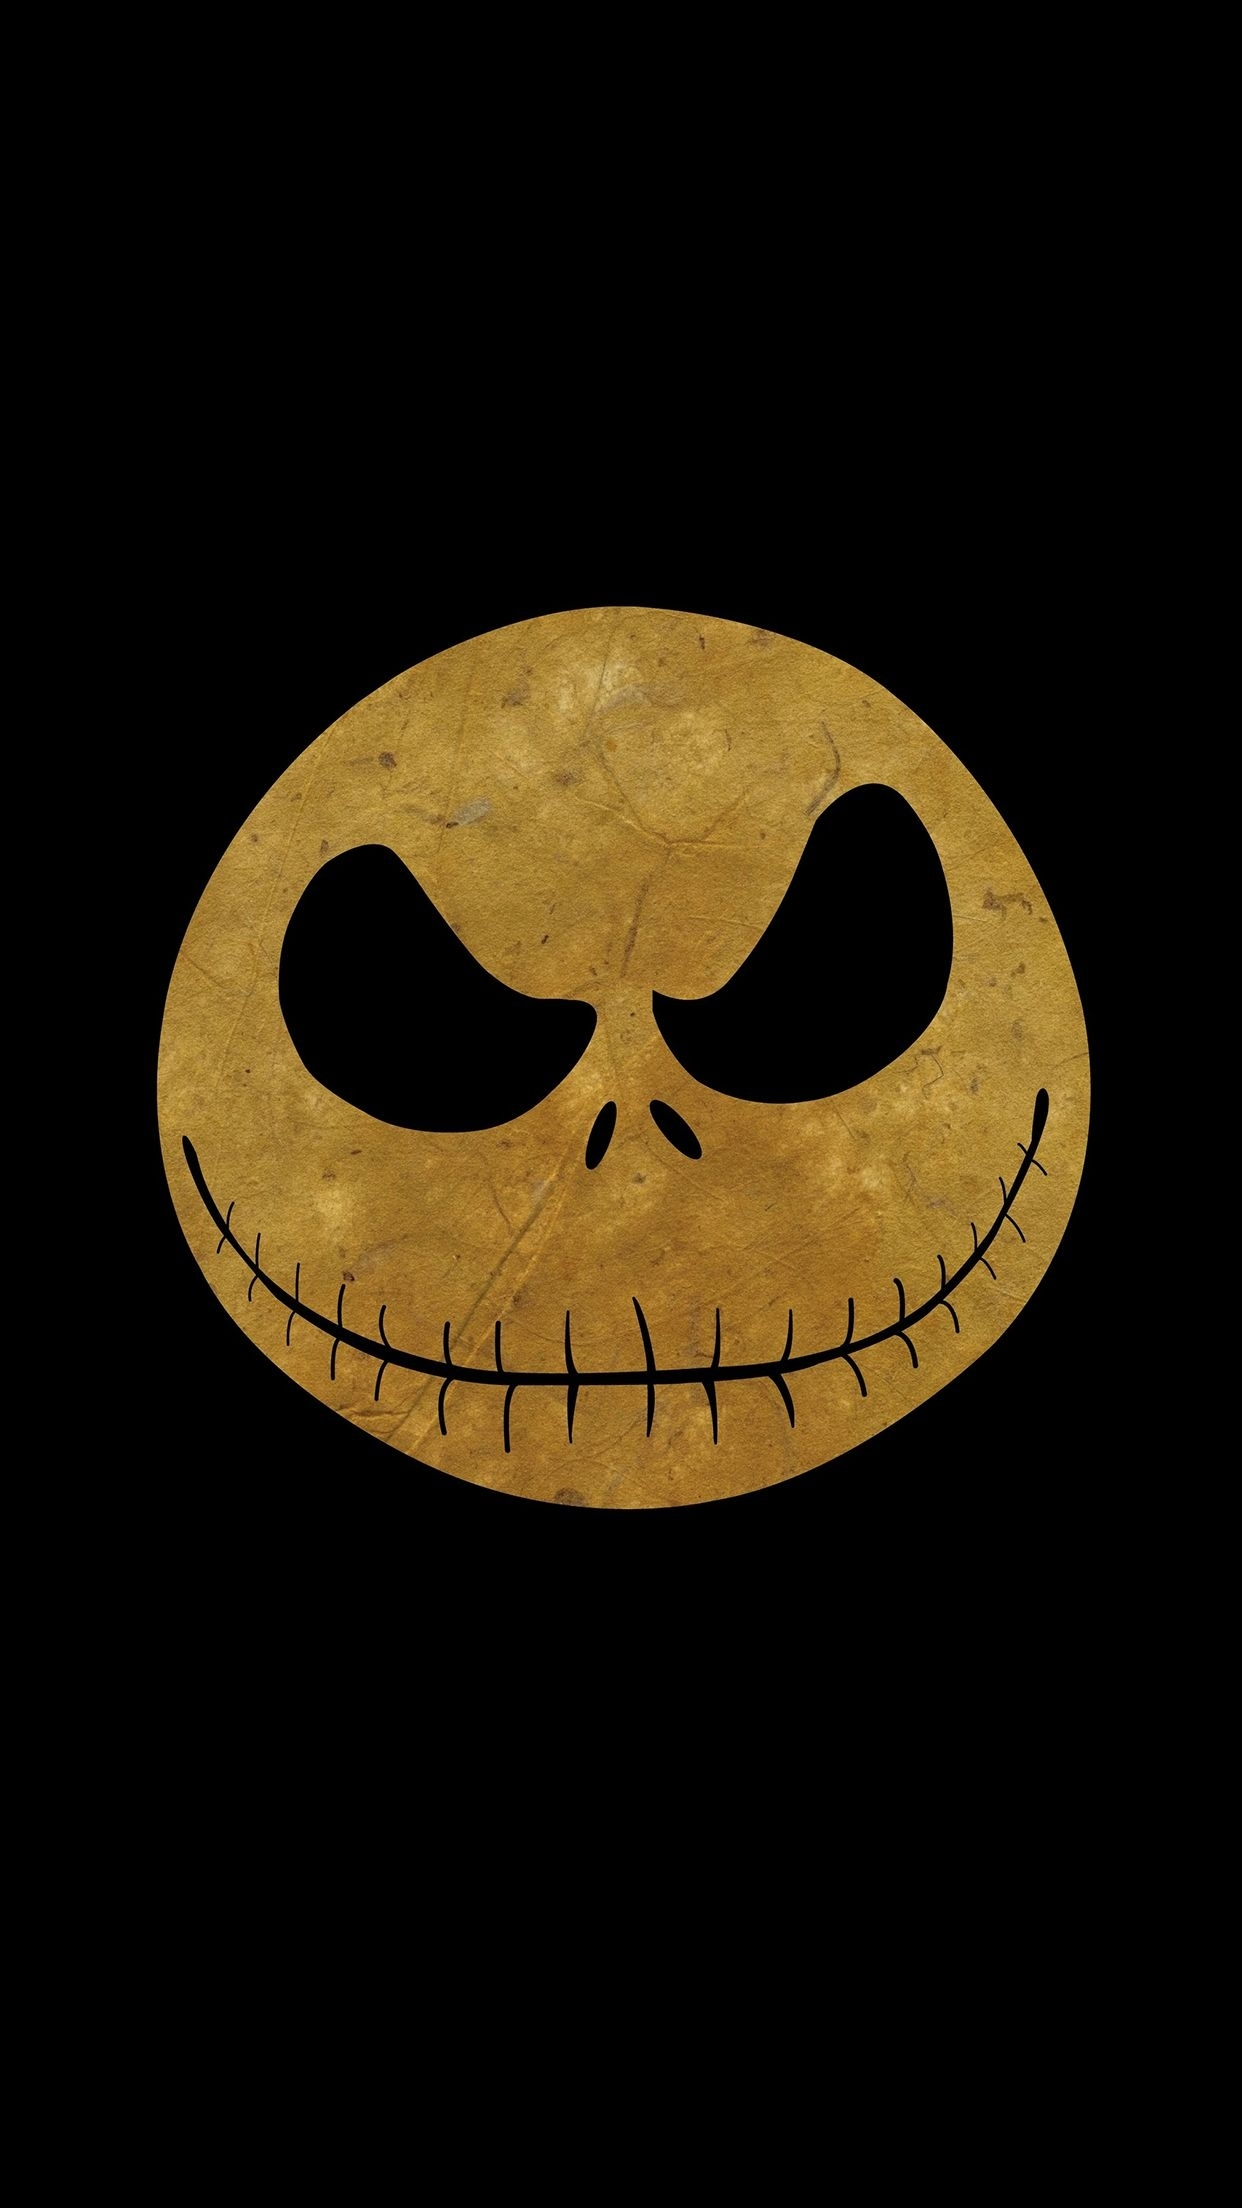 nightmare before christmas iphone wallpaper - wallpapersafari | tim